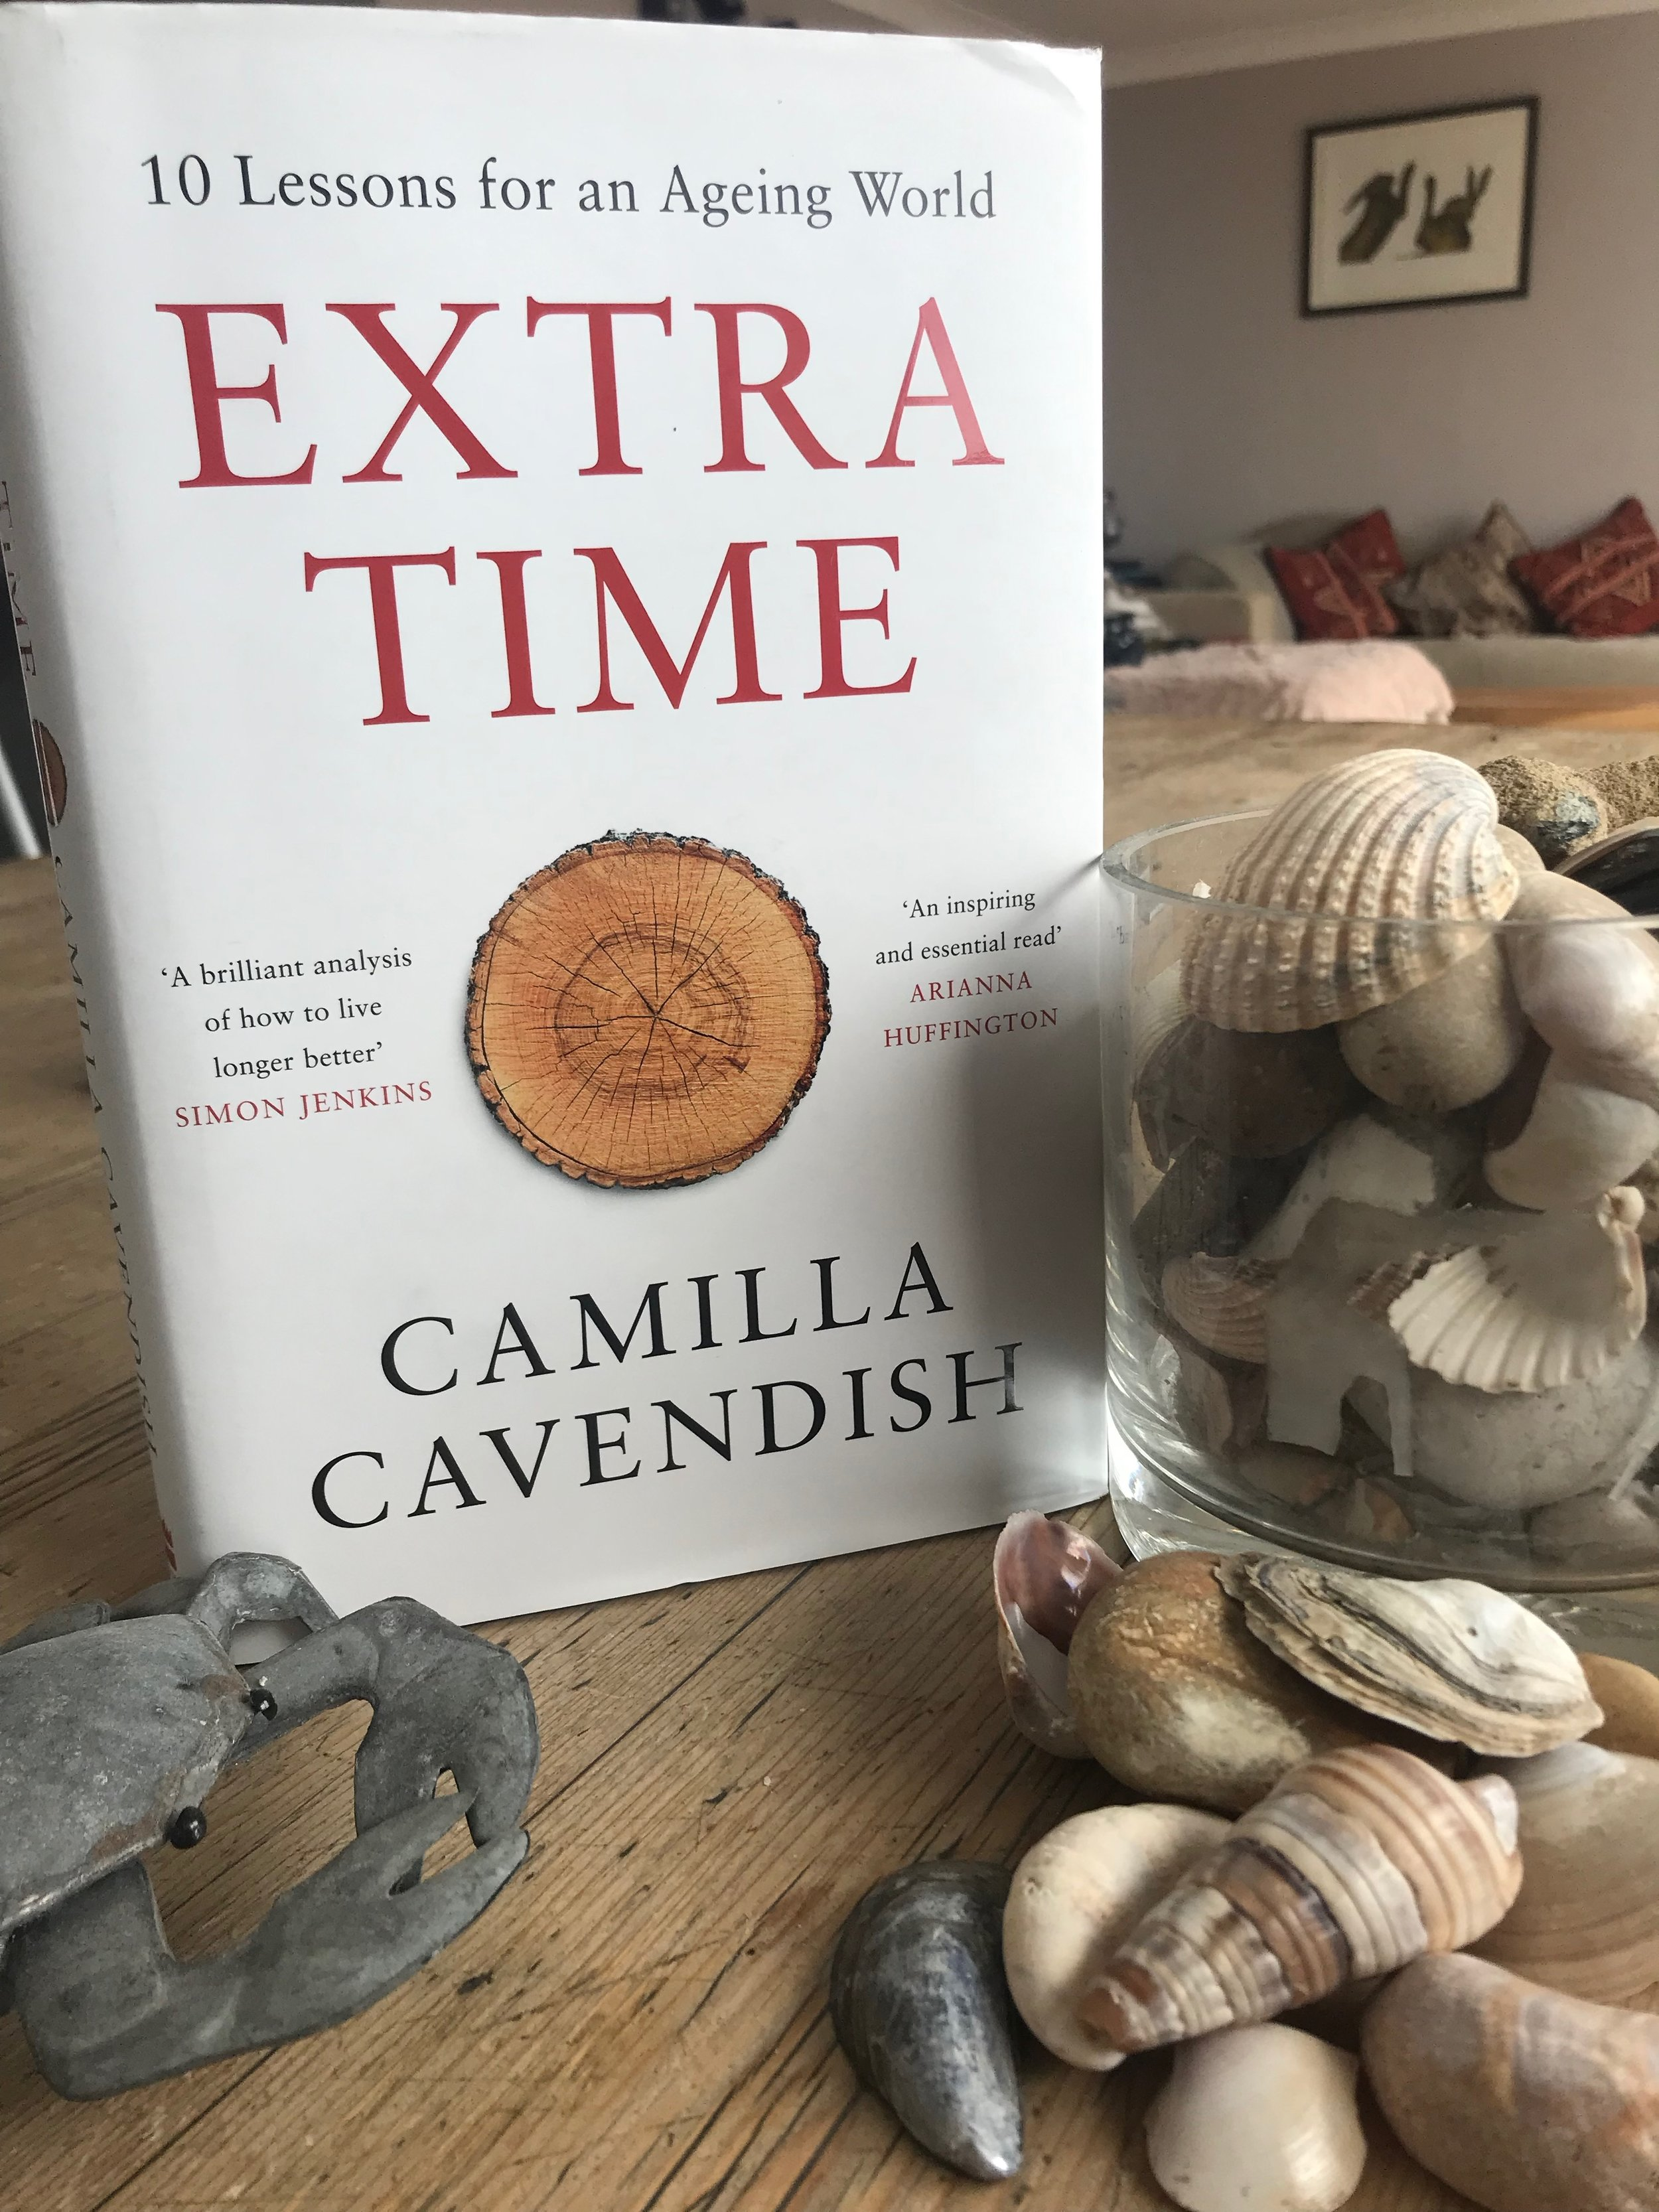 Extra Time by Camilla Cavendish. Photo props courtesy of the temporary Heydays beach-side HQ and nothing to do with the book at all!